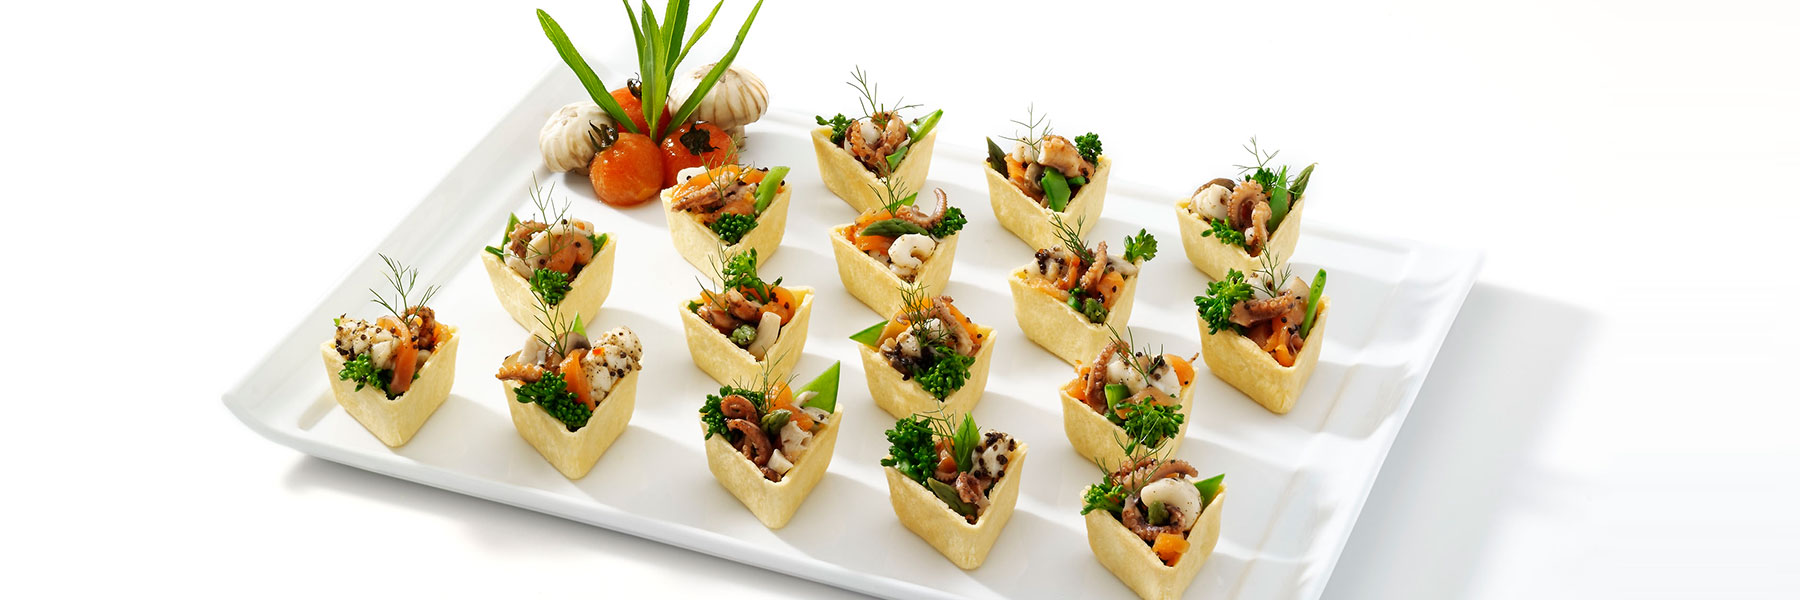 summer savoury canape recipes for your next event